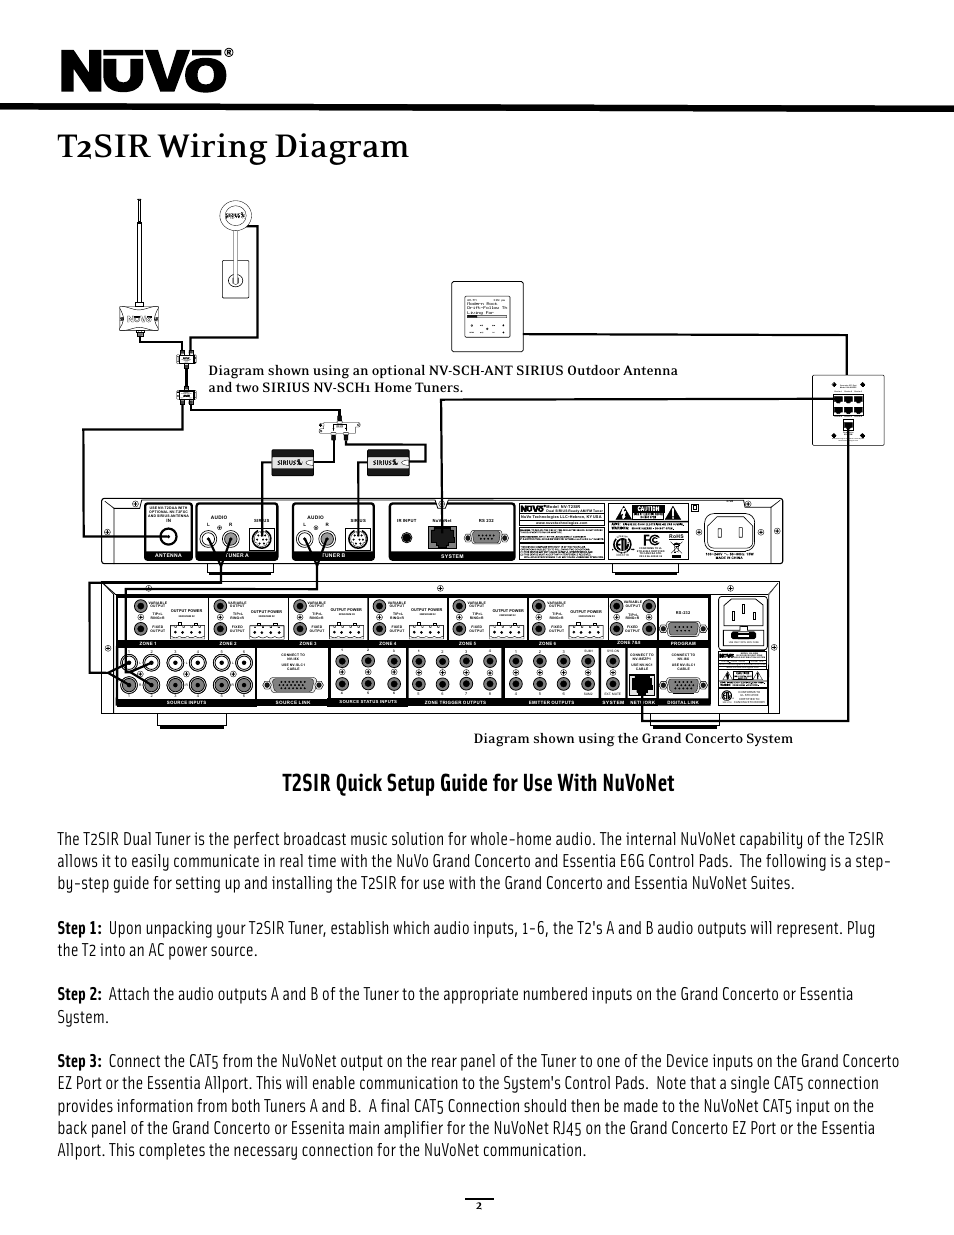 Wiring Diagram Quick Setup T2sir Whole House Audio Together With For Guide Use Nuvonet Nuvo Nv User Manual Page 7 30